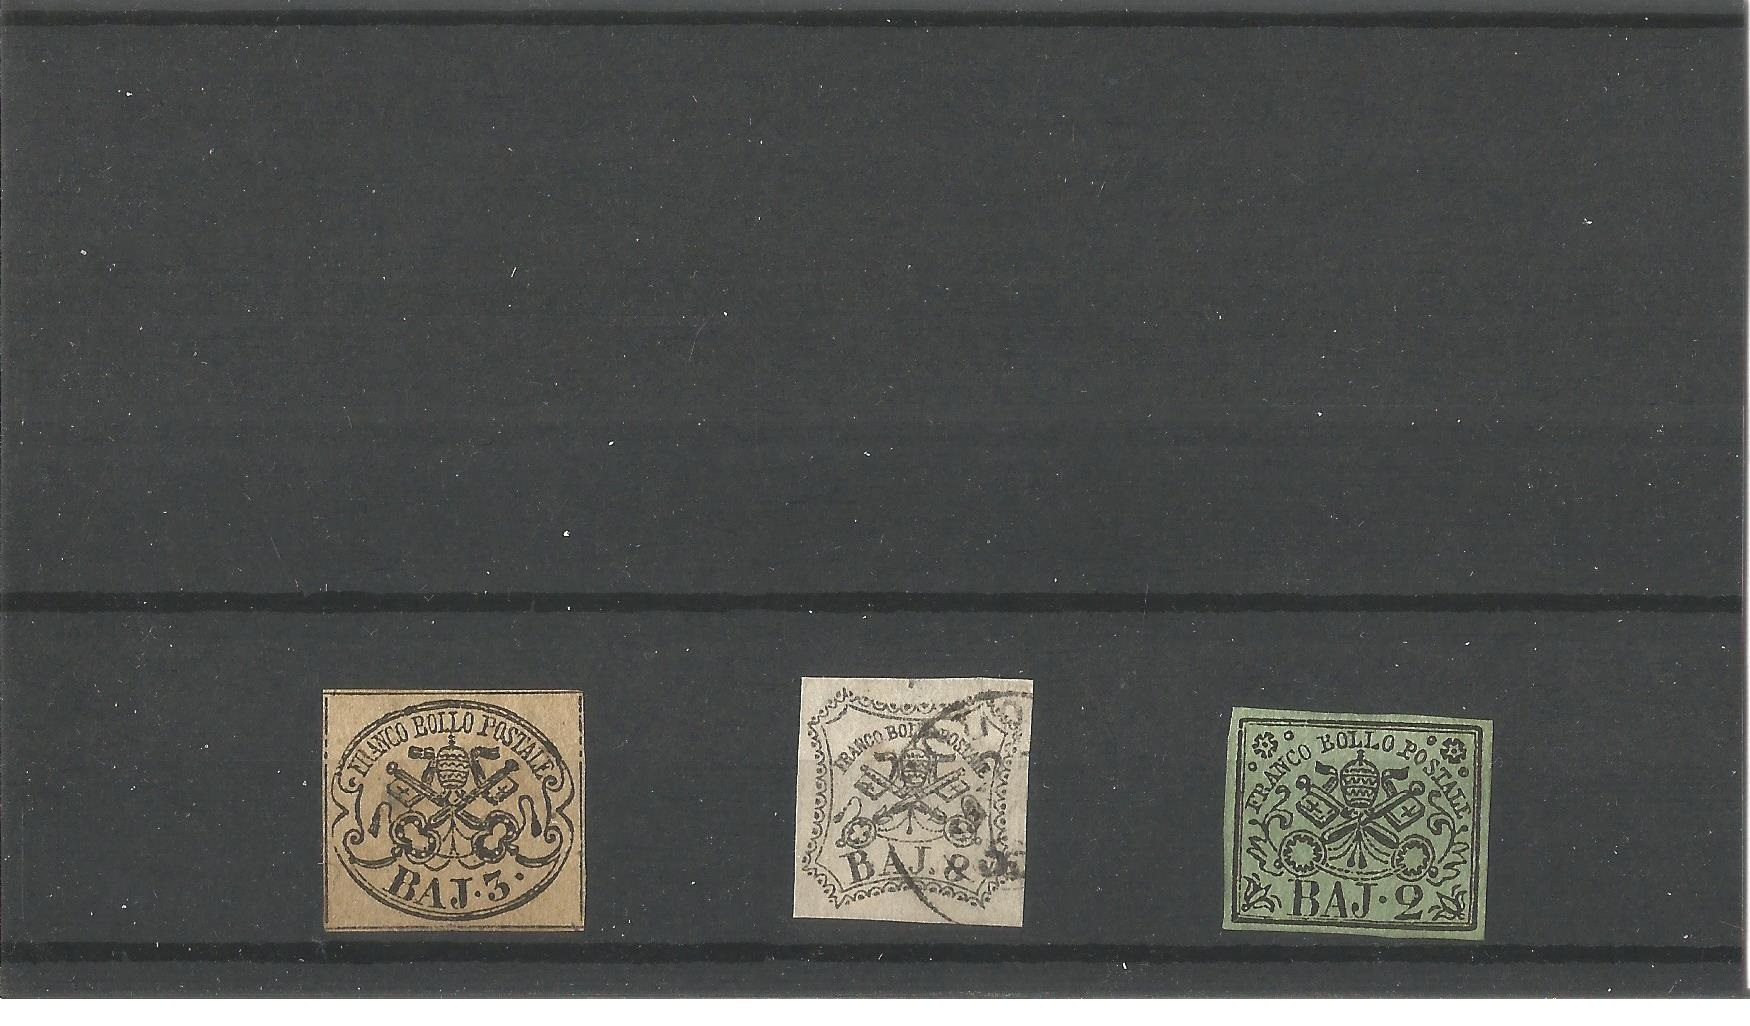 3 Papal states stamps on stockcard. Good condition. We combine postage on multiple winning lots